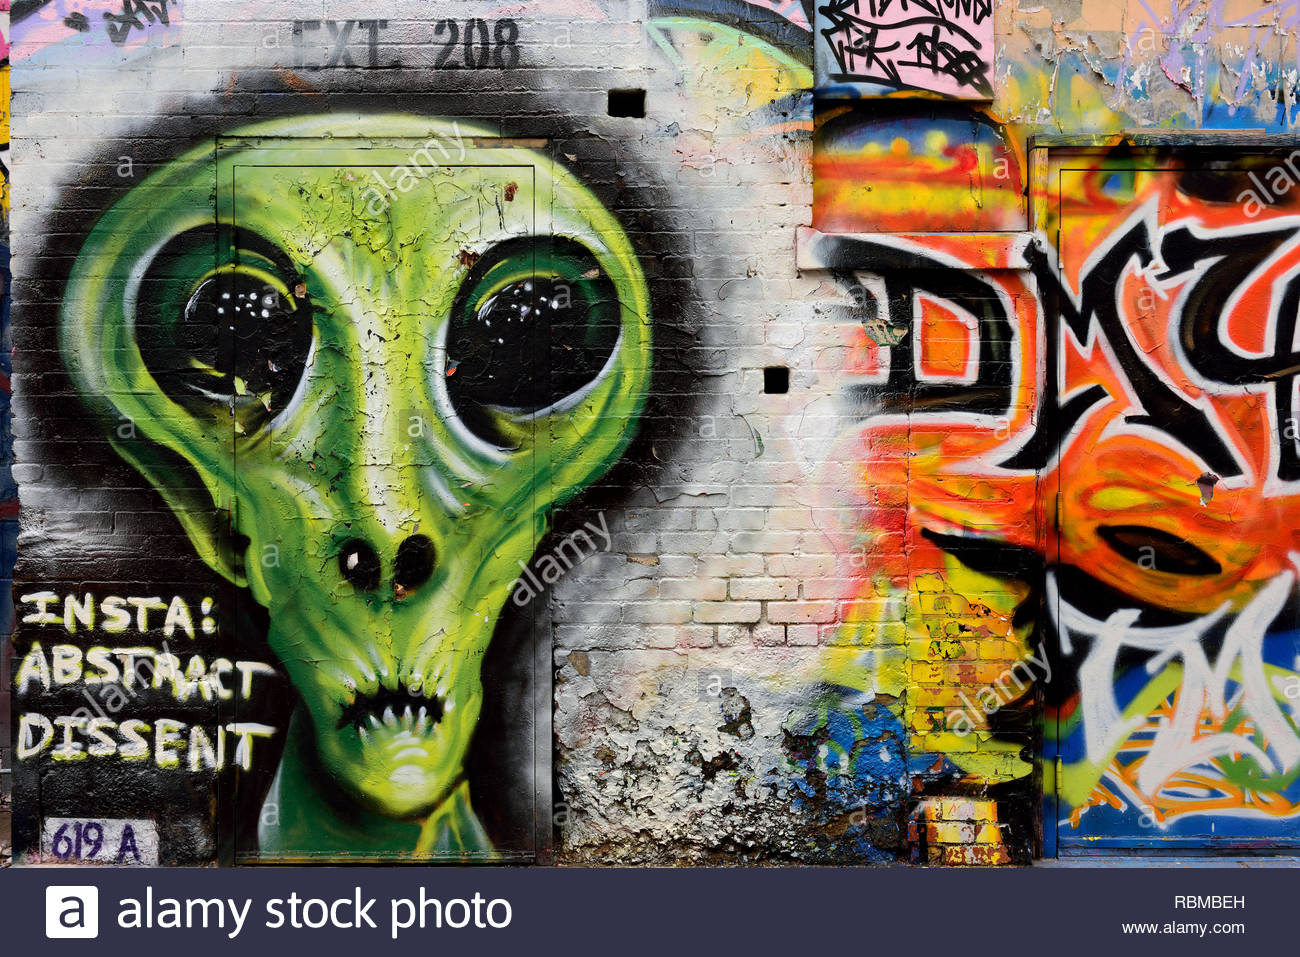 Alley street art painting, mural of an extraterrestial alien being with large eyes. - Stock Image